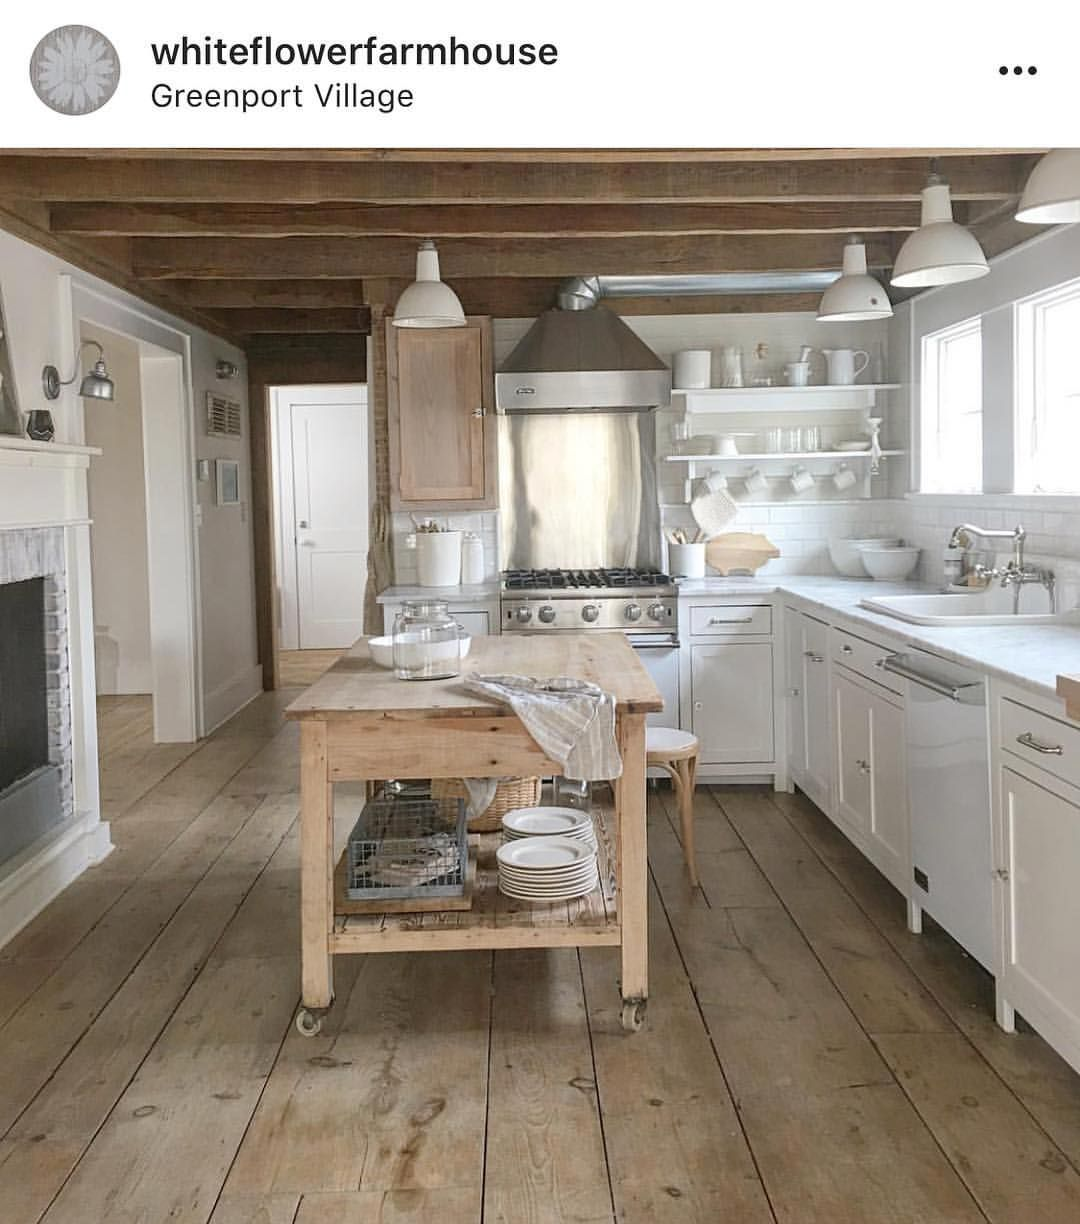 One of my favorite kitchens on instagram is